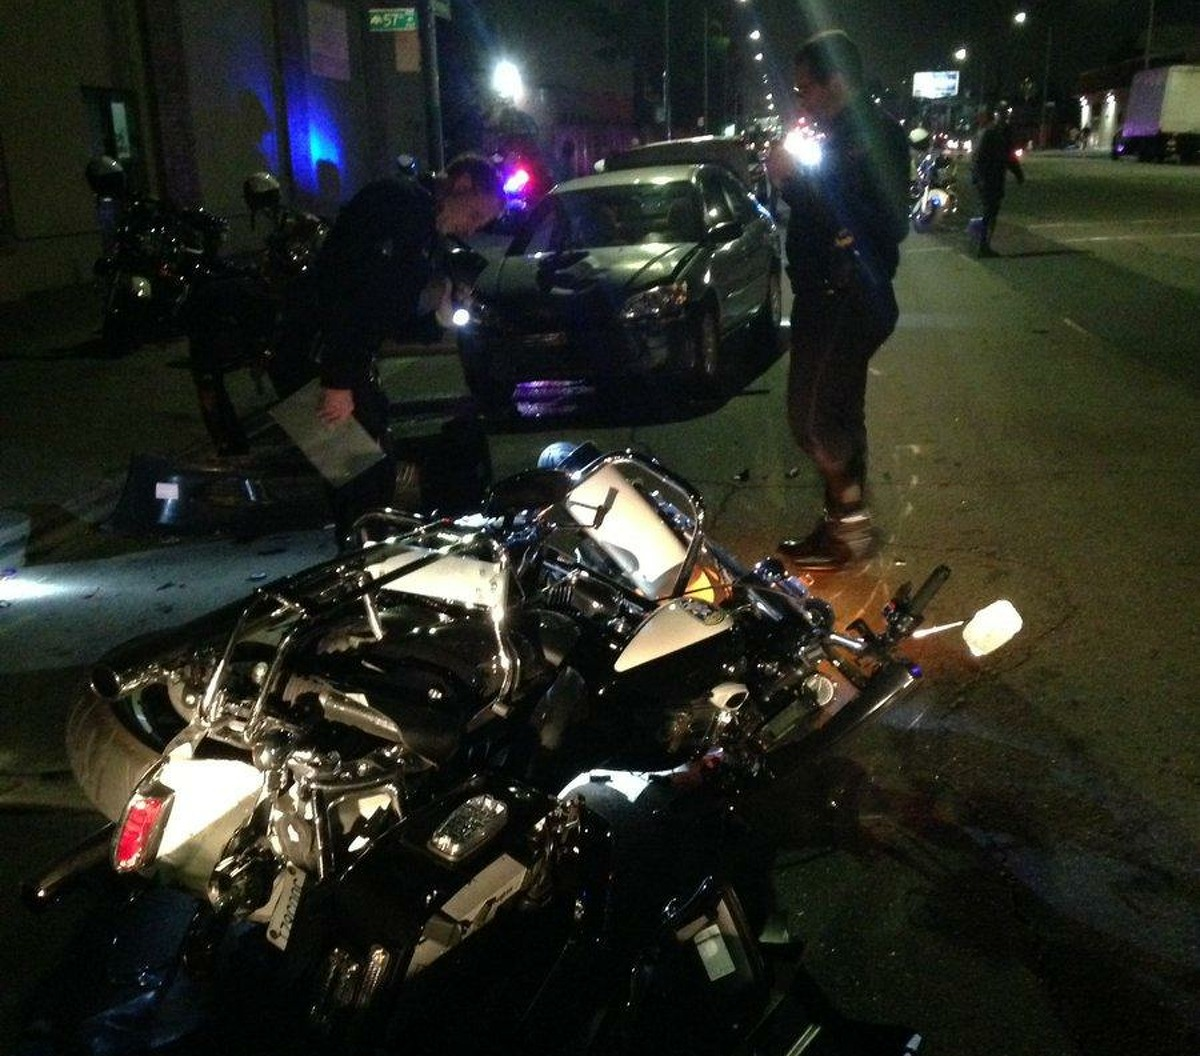 An Oakland police officer was transported to the hospital in stable condition after a drunk driver rammed into him Monday night, police said.